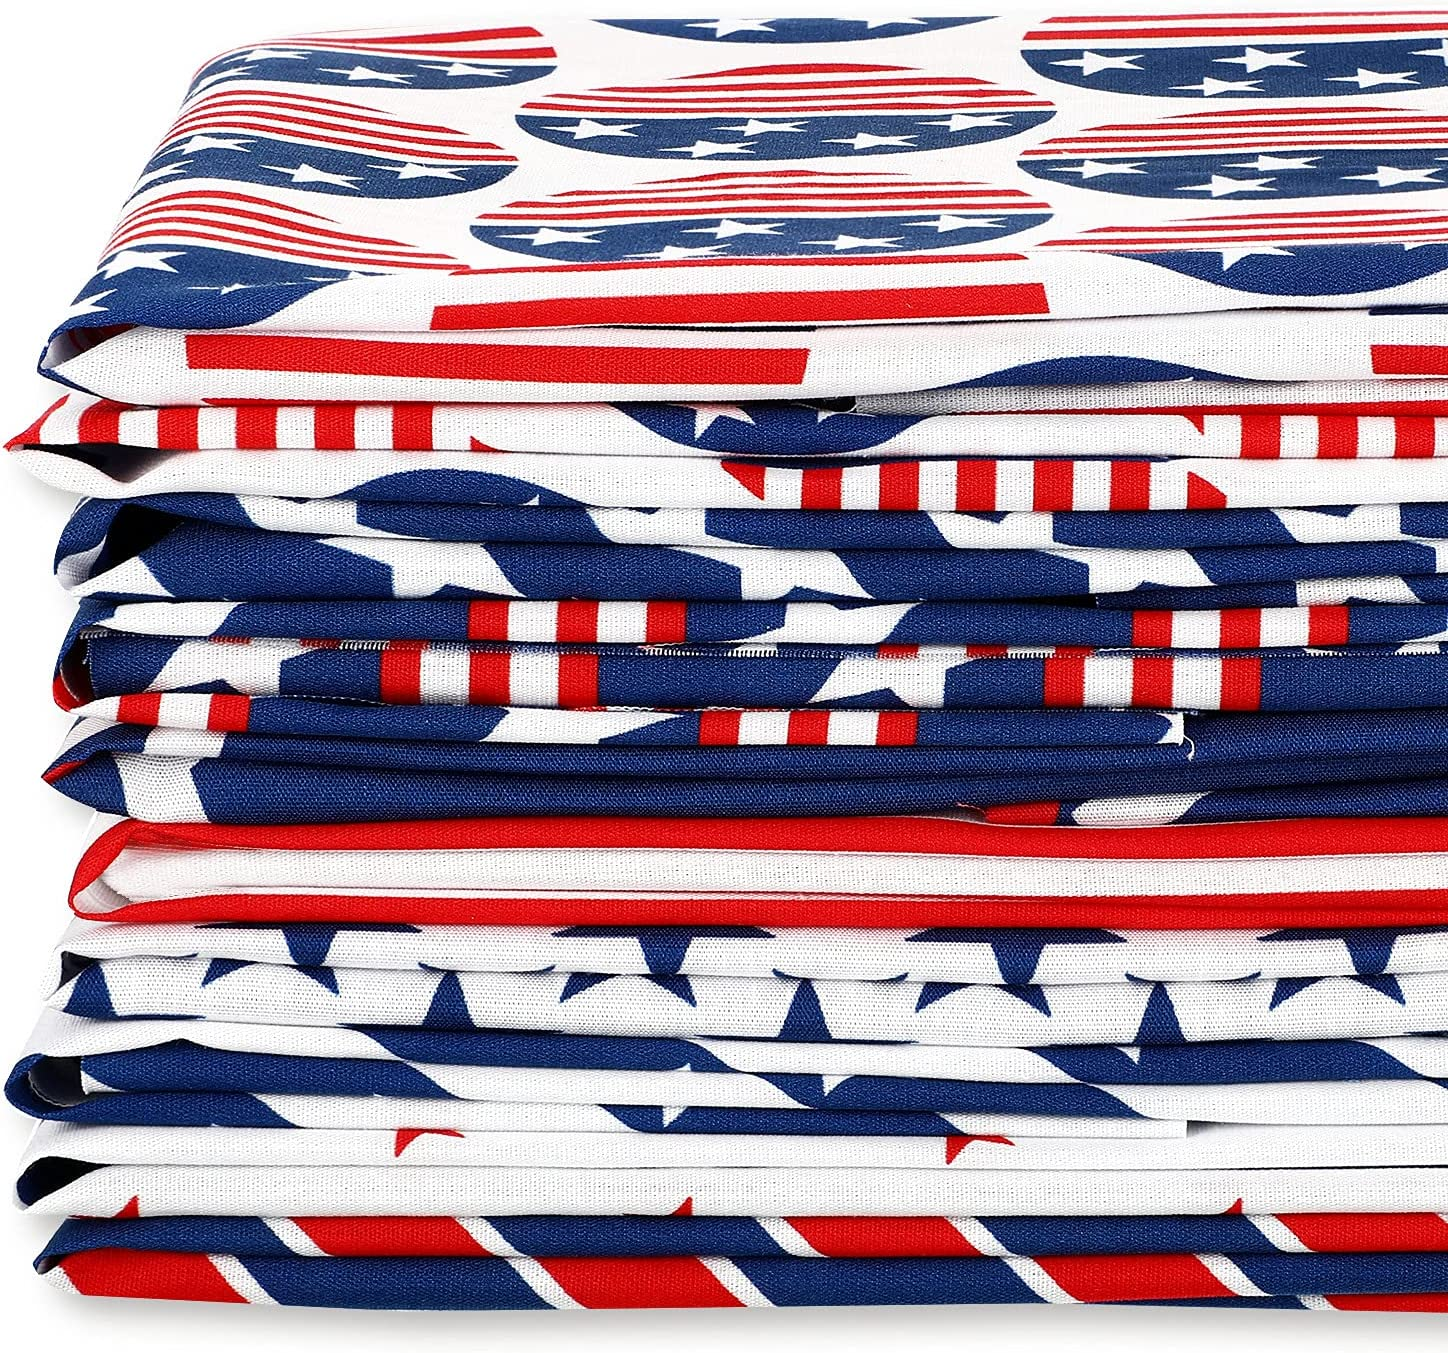 10 Pieces Patriotic Fabric Bundles, 4th of July Fat Quarters, Stars and Stripes Fabric Patriotic Decoration Print Quilting Fabric Bundles for DIY Sewing Patchwork (10 x 10 Inches)